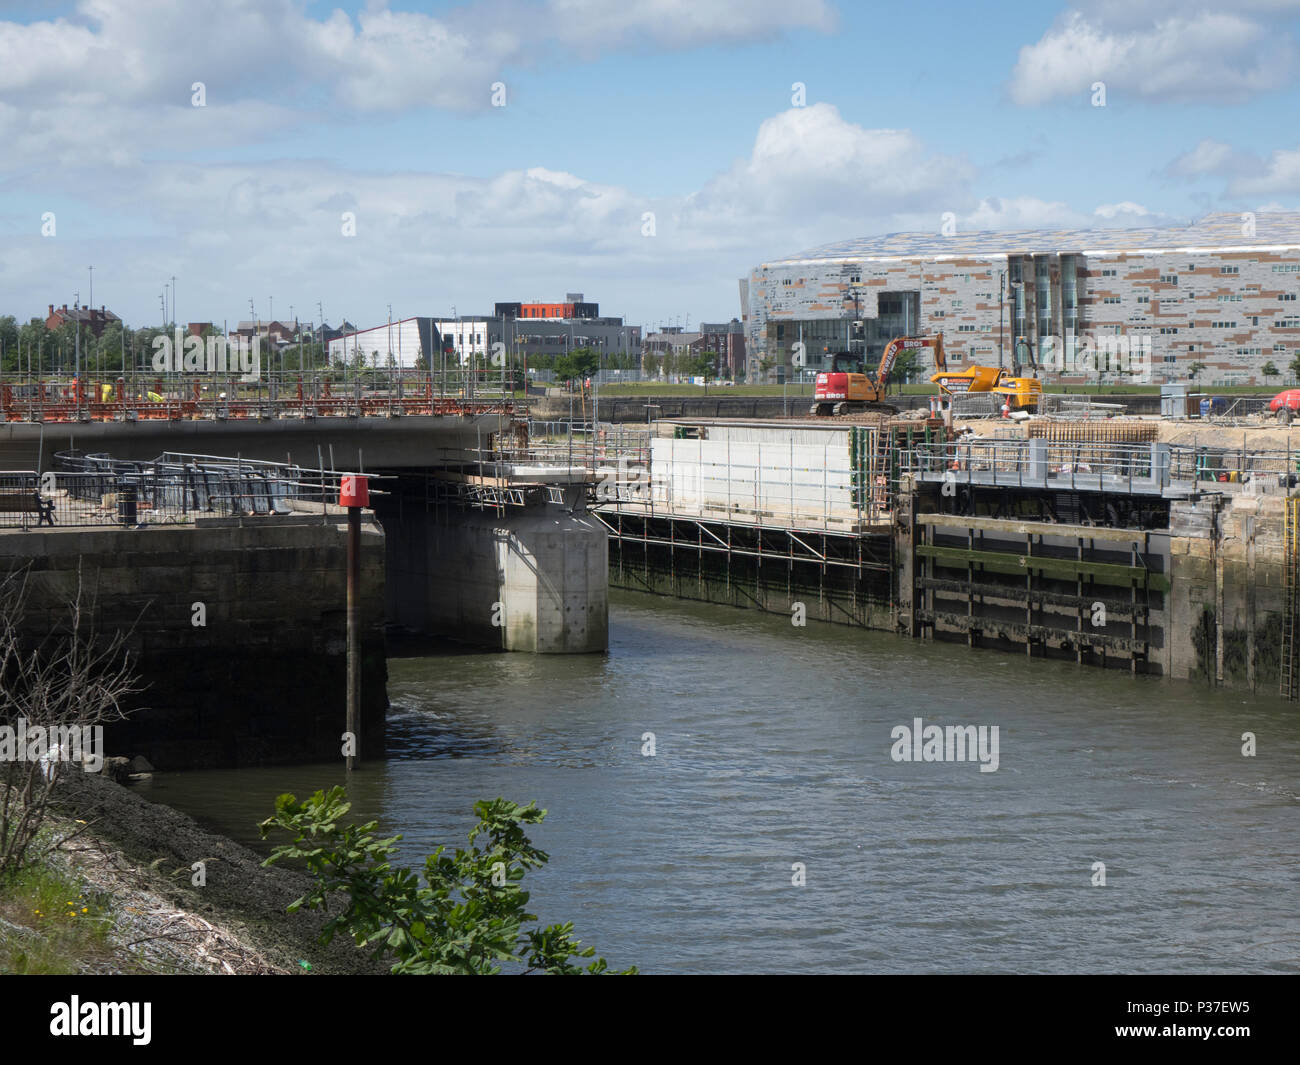 Civil Engineering a reinforced conrete road bridge over the entrance to Middlehaven Dock Middlesbrough under construction June 2018 - Stock Image